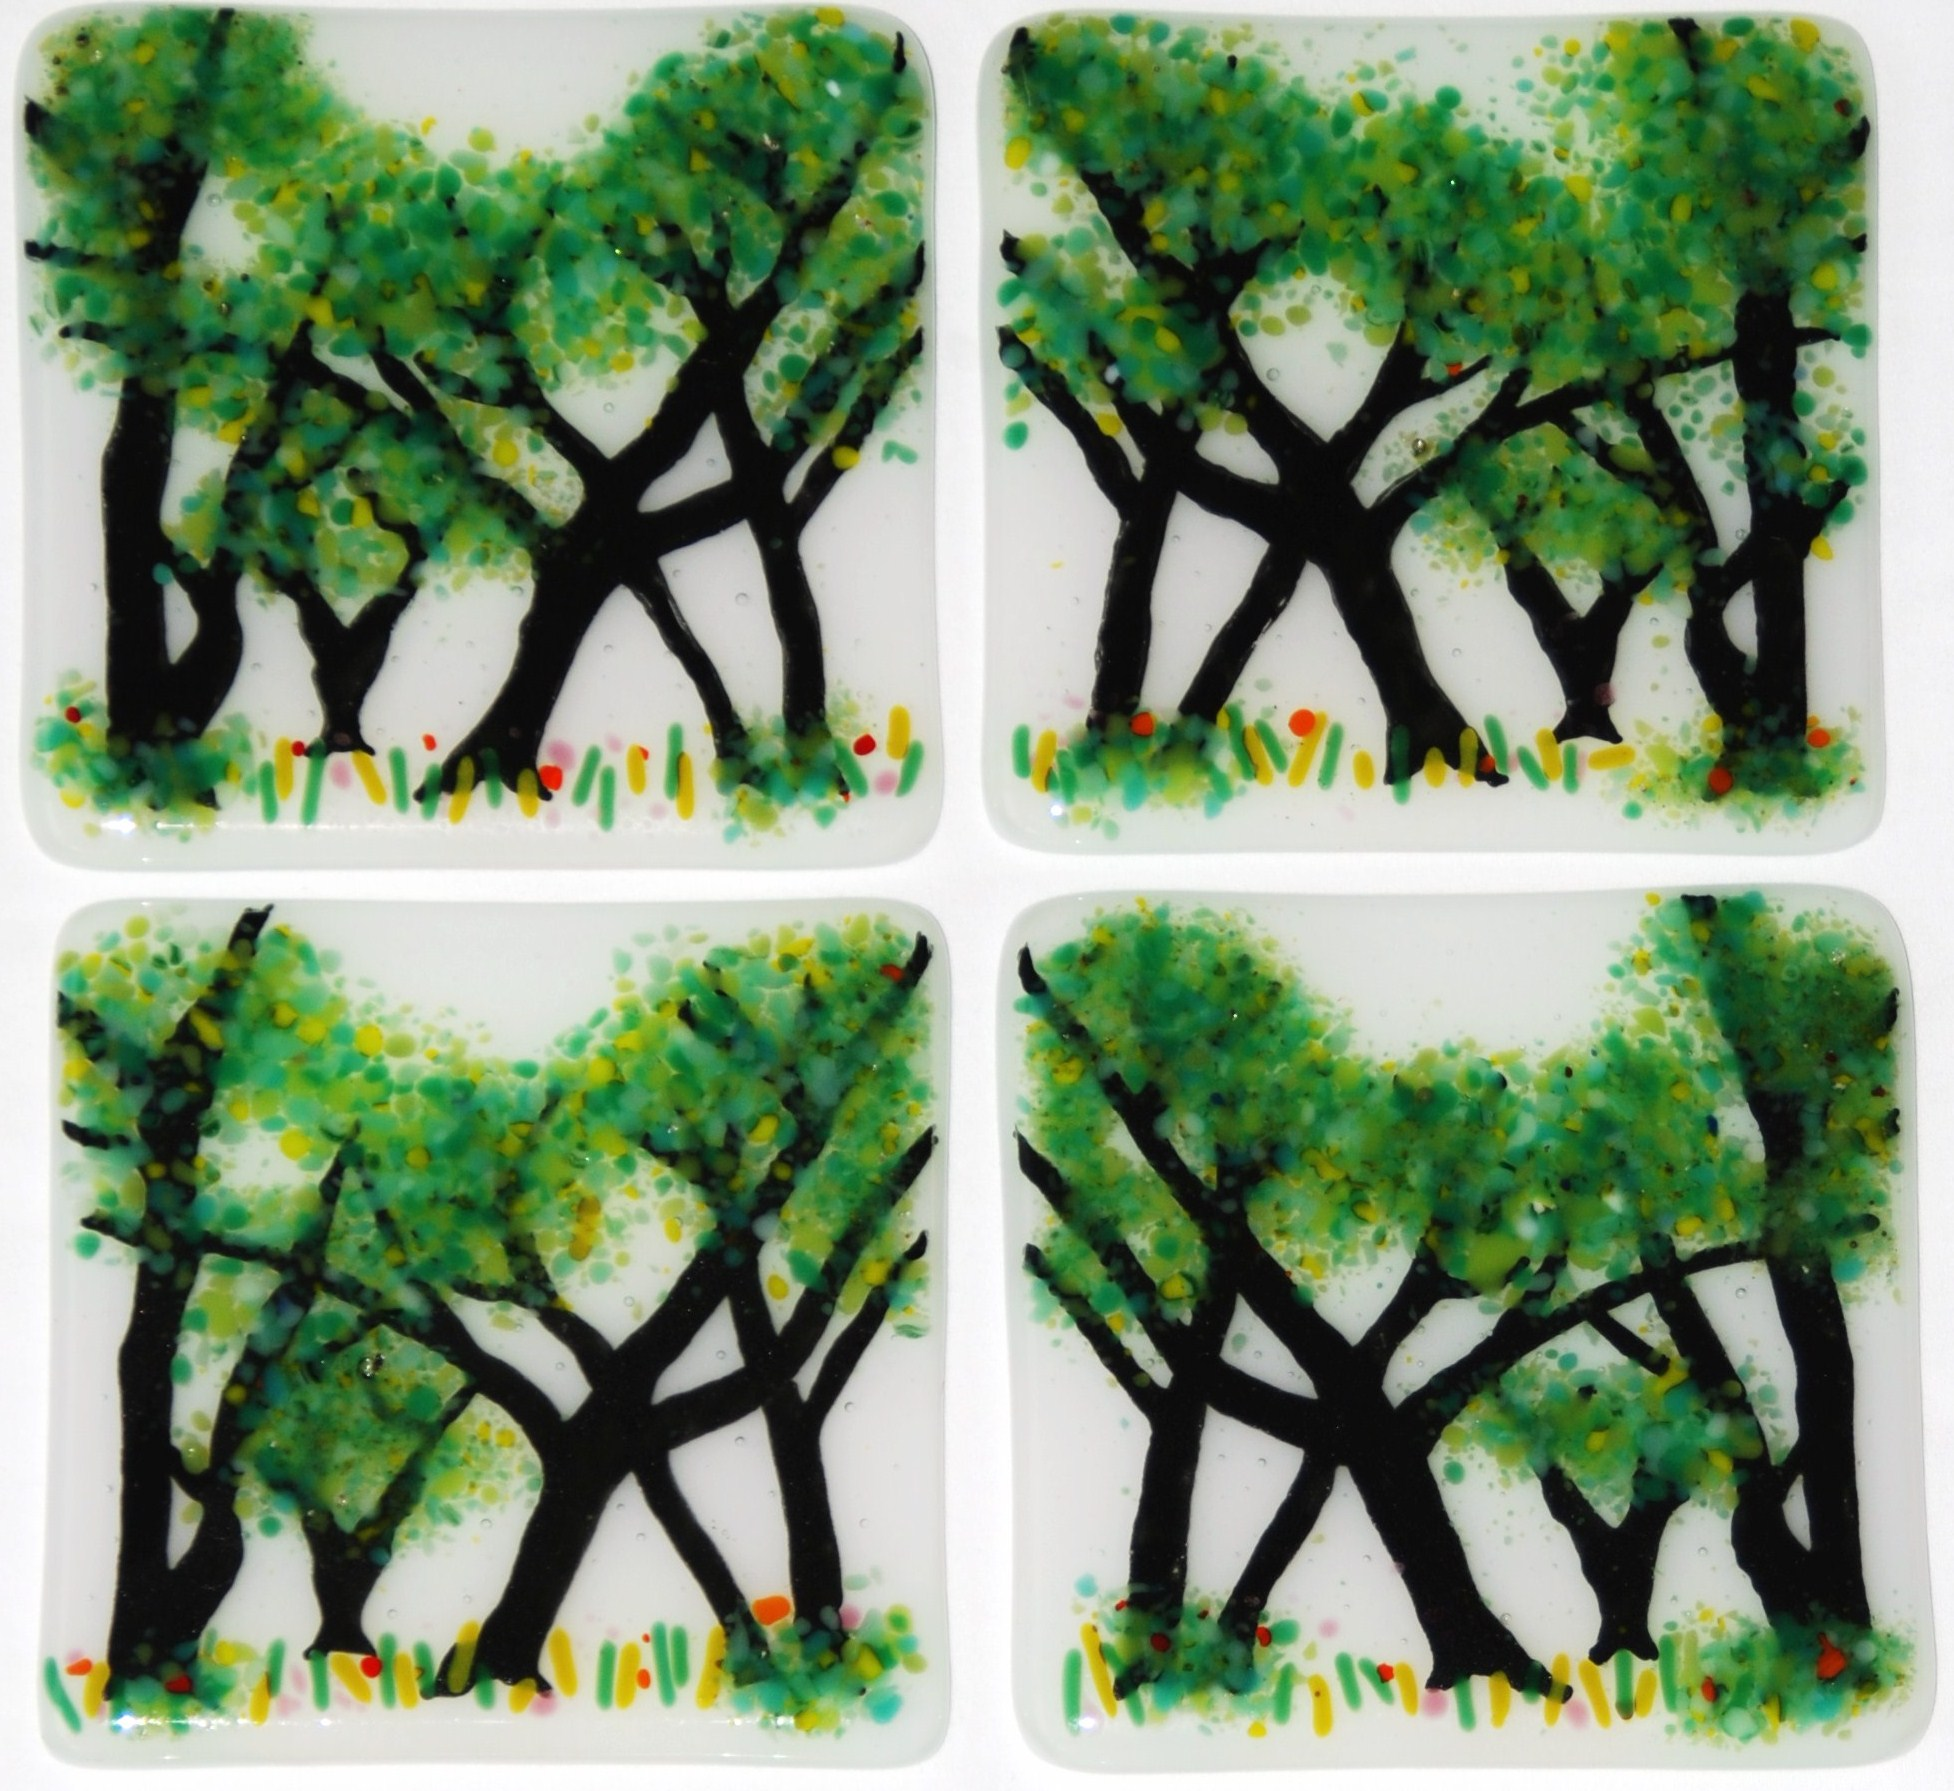 Four hand-painted fused glass tiles with lush trees and hints of summer flowers.